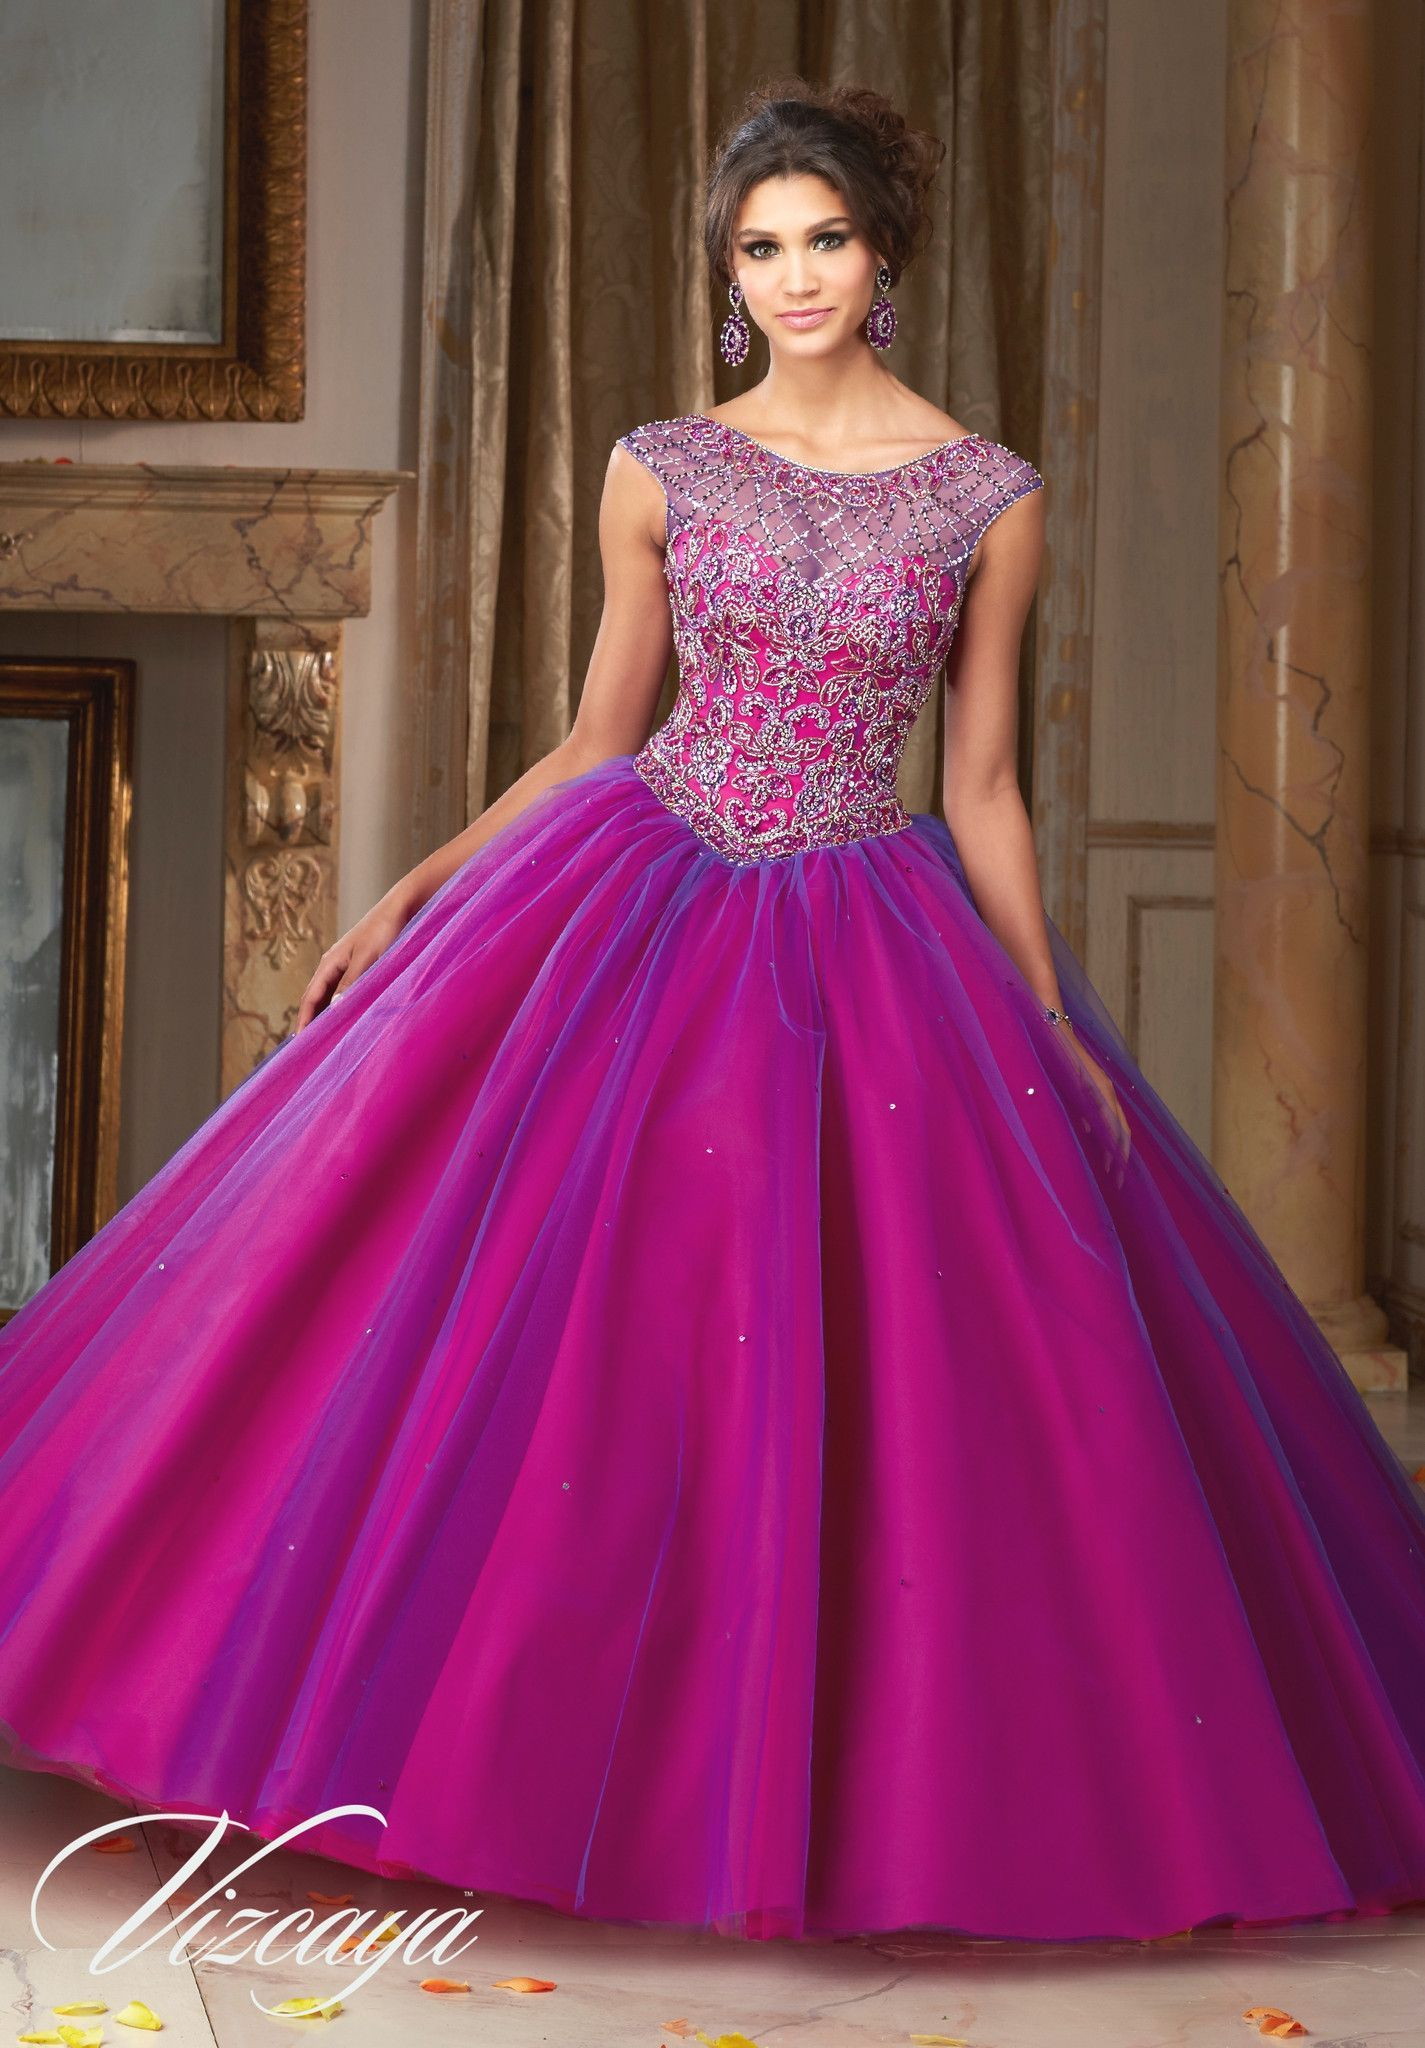 Mori Lee Quinceanera Dress 89104 | Mori lee, Gowns and Prom